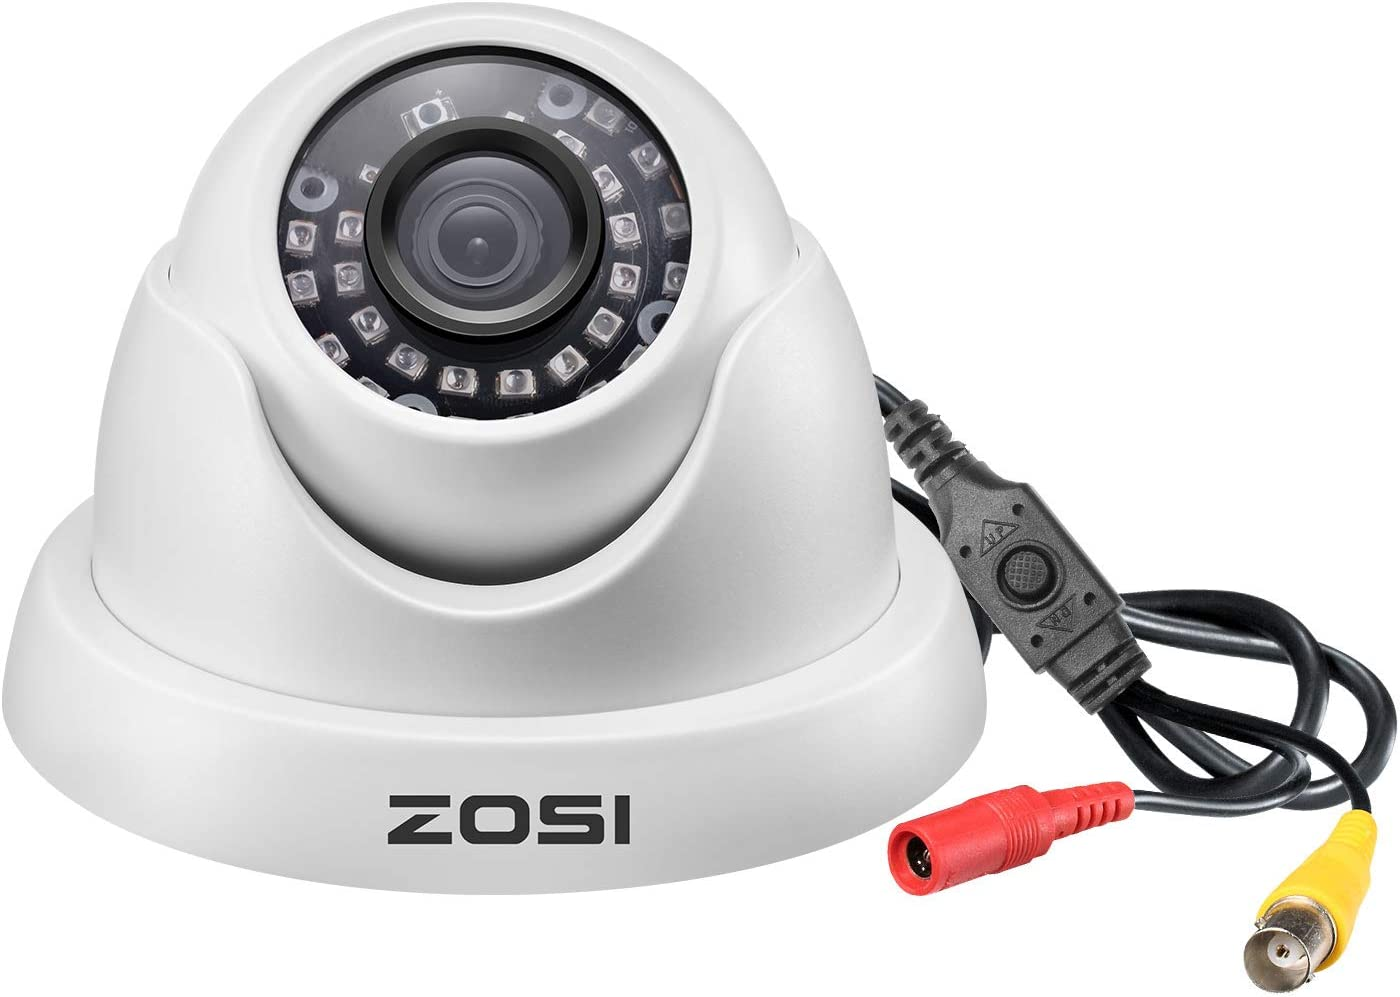 ZOSI 1080p Dome Security Cameras (Hybrid 4-in-1 HD-CVI/TVI/AHD/960H Analog CVBS),2MP Day Night Vision Weatherproof Dome Camera Outdoor/Indoor